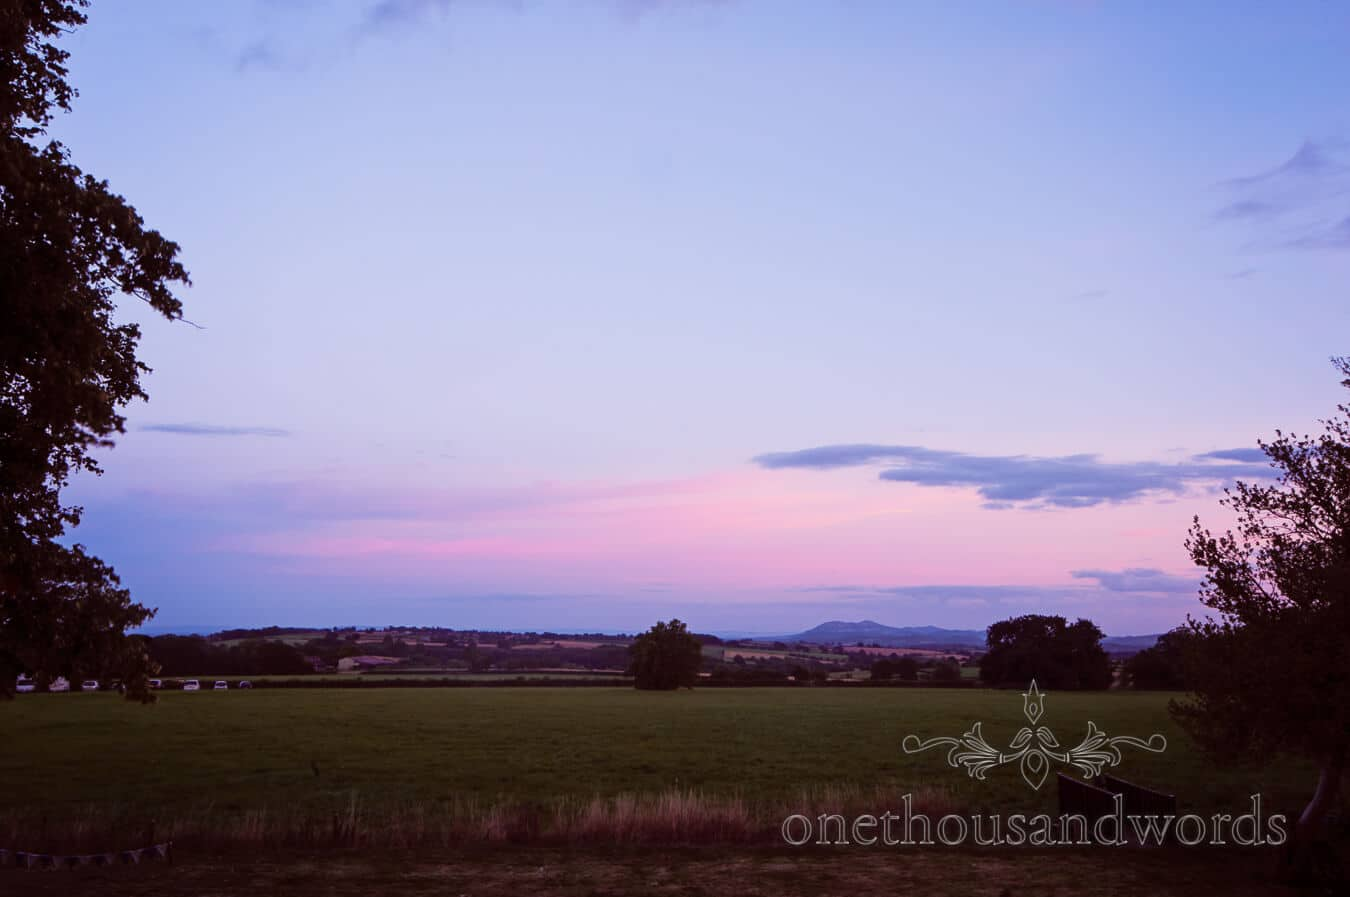 Sunset over Countryside Wedding fields